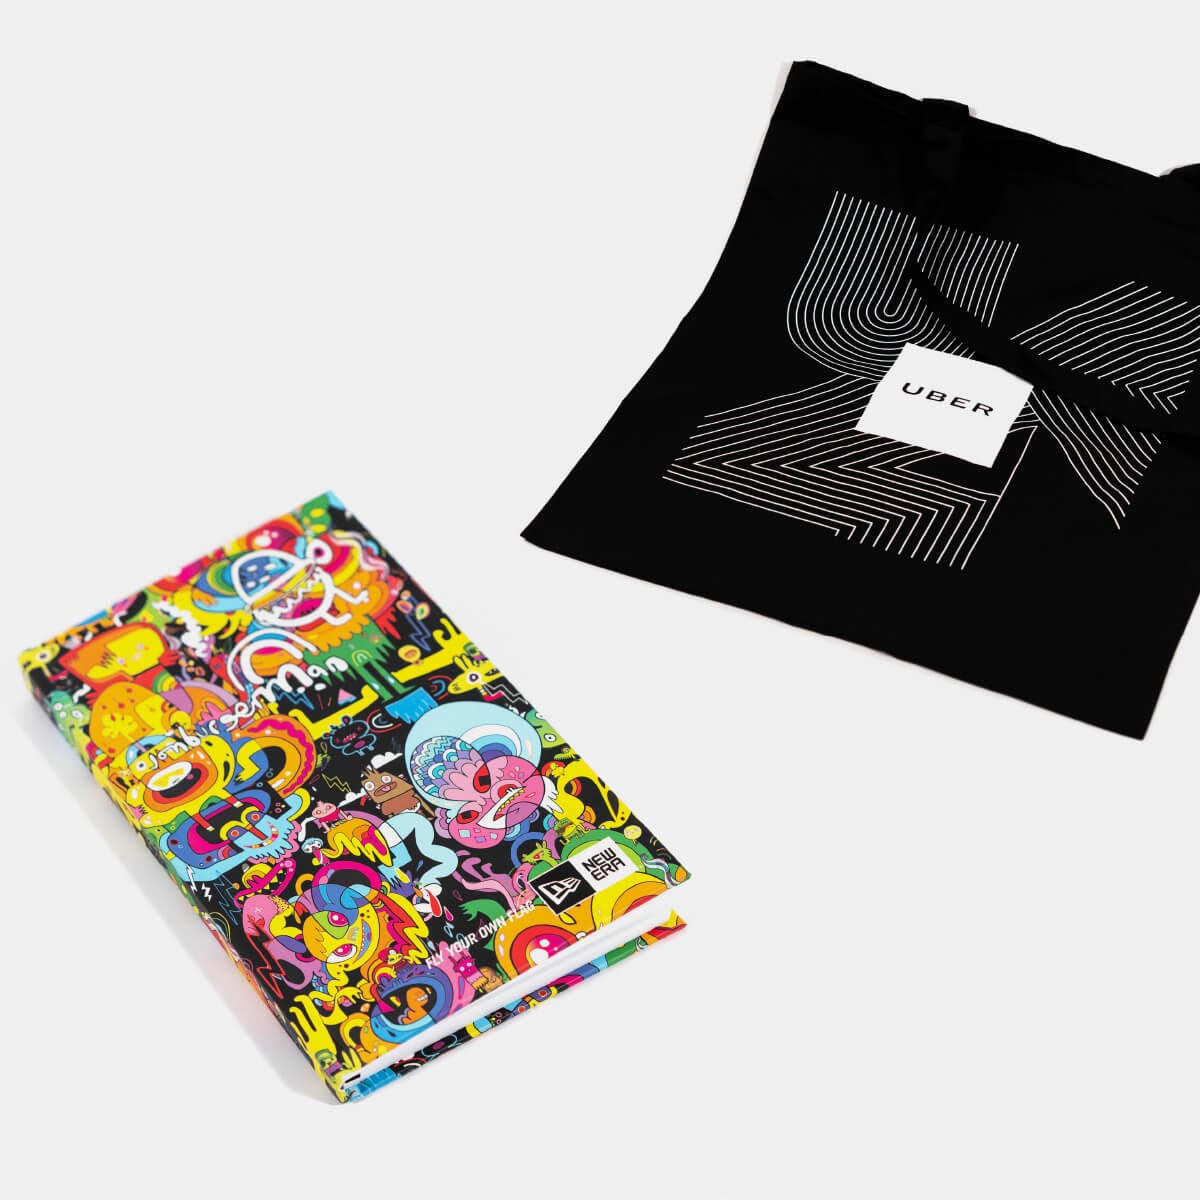 Background image of silk screen printed Uber tote bag and new era colourful printed notebook